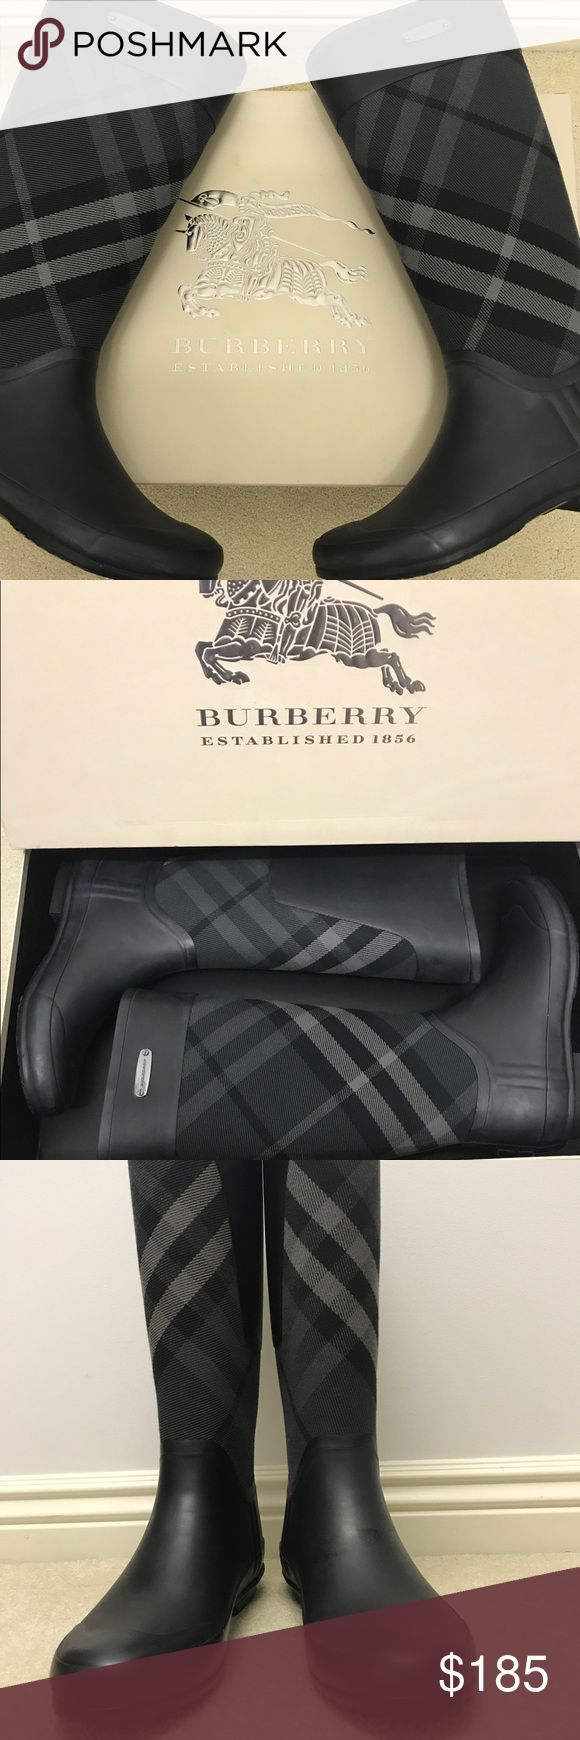 BURBERRY CLEMENCE RAIN BOOTS BURBERRY rain boots   Worn twice   Excellent condition Burberry Shoes Winter & Rain Boots